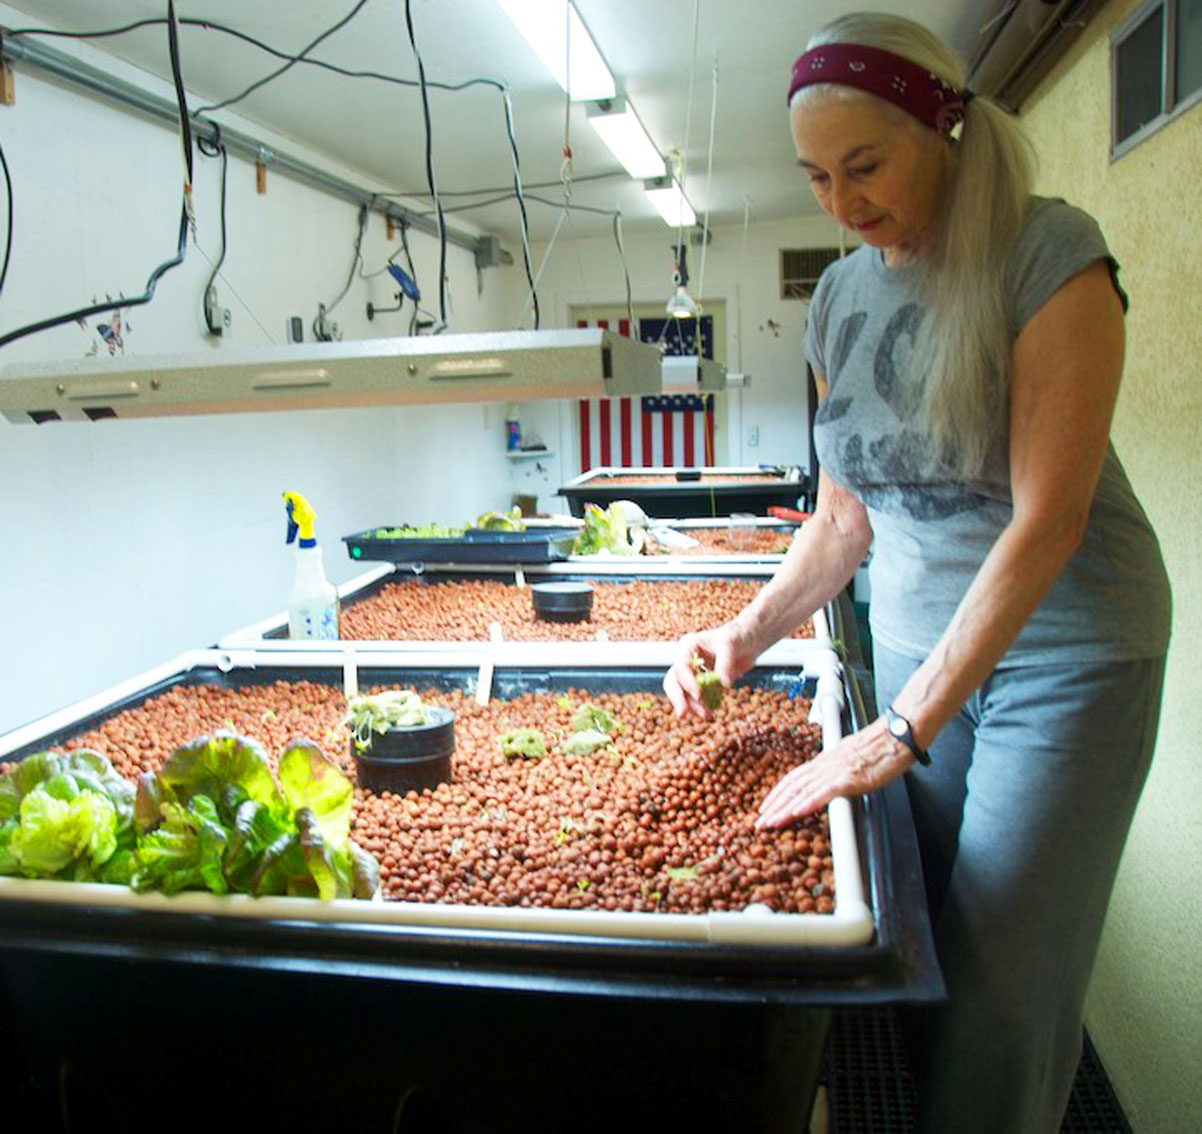 Planting seedlings into the grow beds aquaponicsusa 39 s blog for Aquaponics grow bed